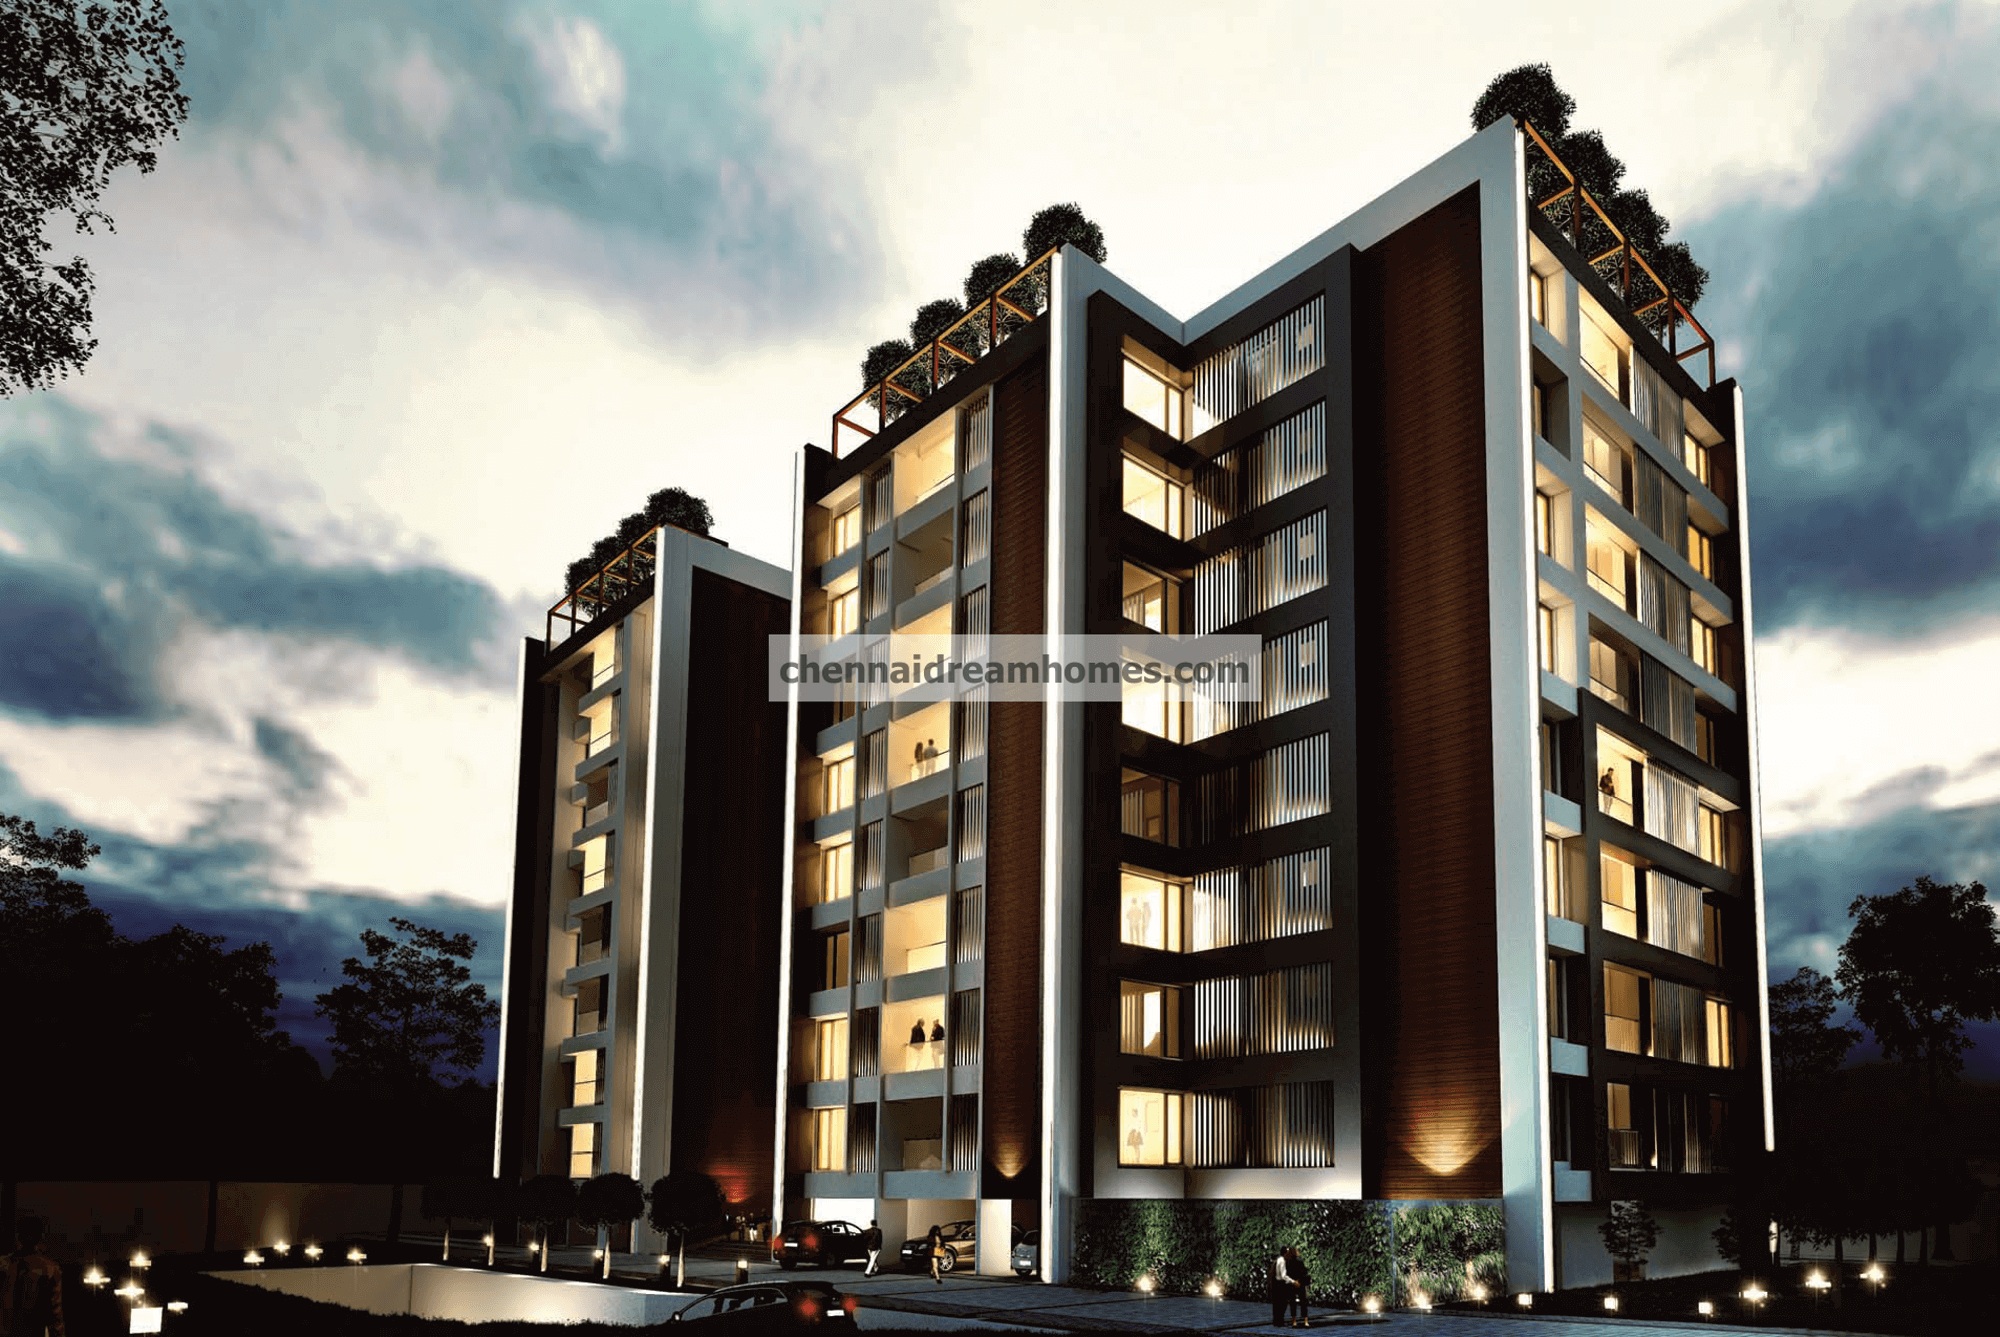 3 BHK Spacious, Luxurious Apartments for sale in the heart of Nungambakkam